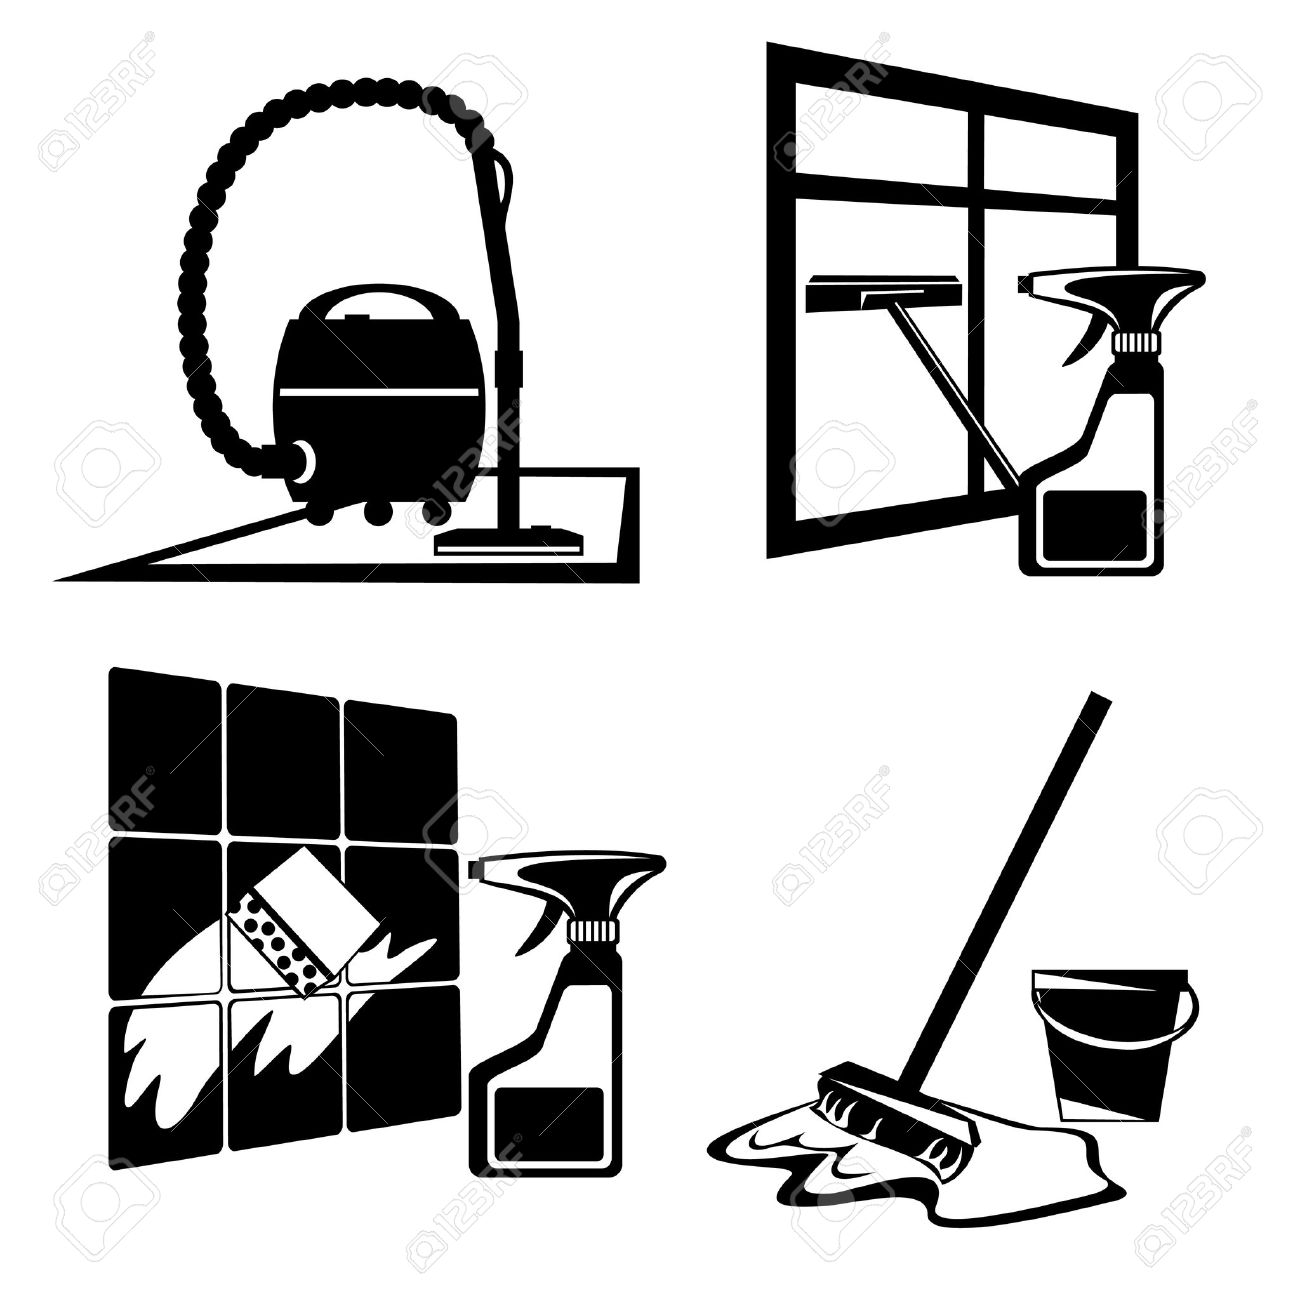 silhouette icons of black cleaning, washing and maintenance of cleanliness - 7309087